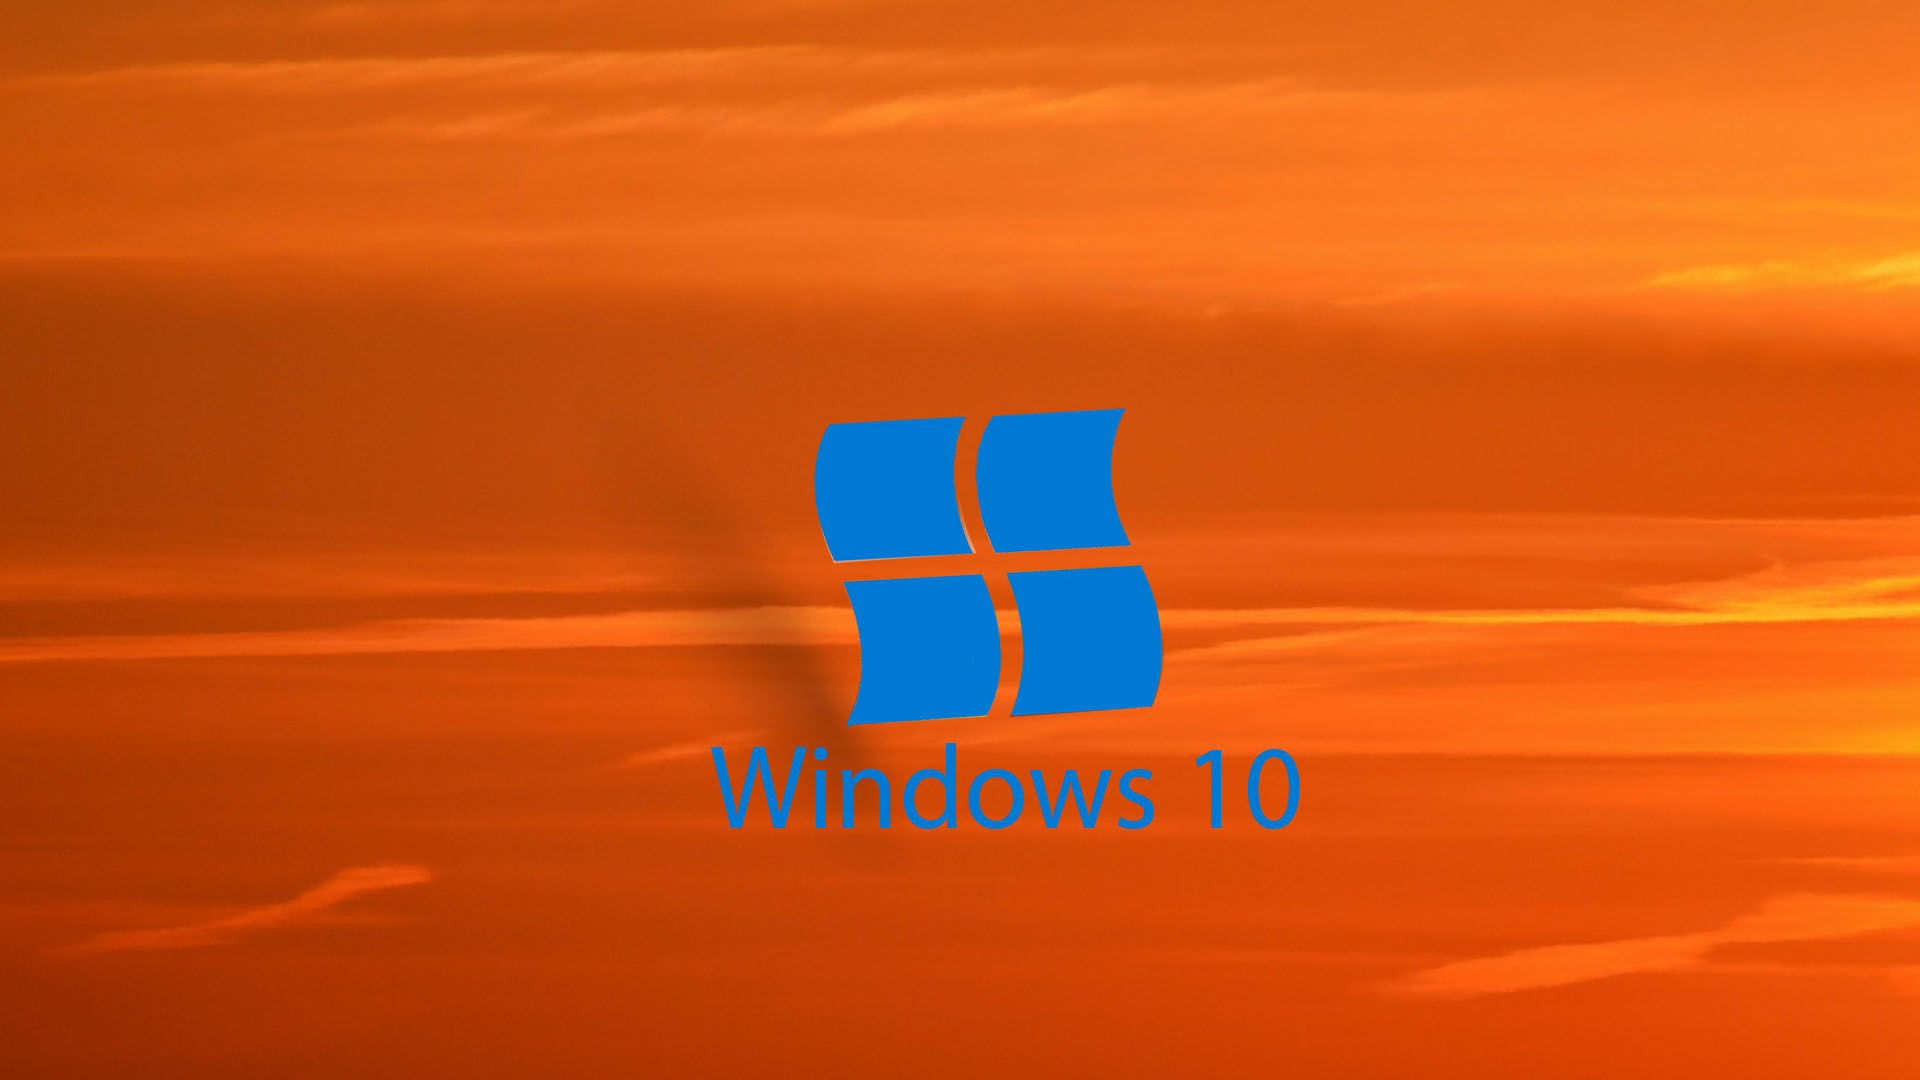 HD Wallpapers for Windows 10  PixelsTalk.Net